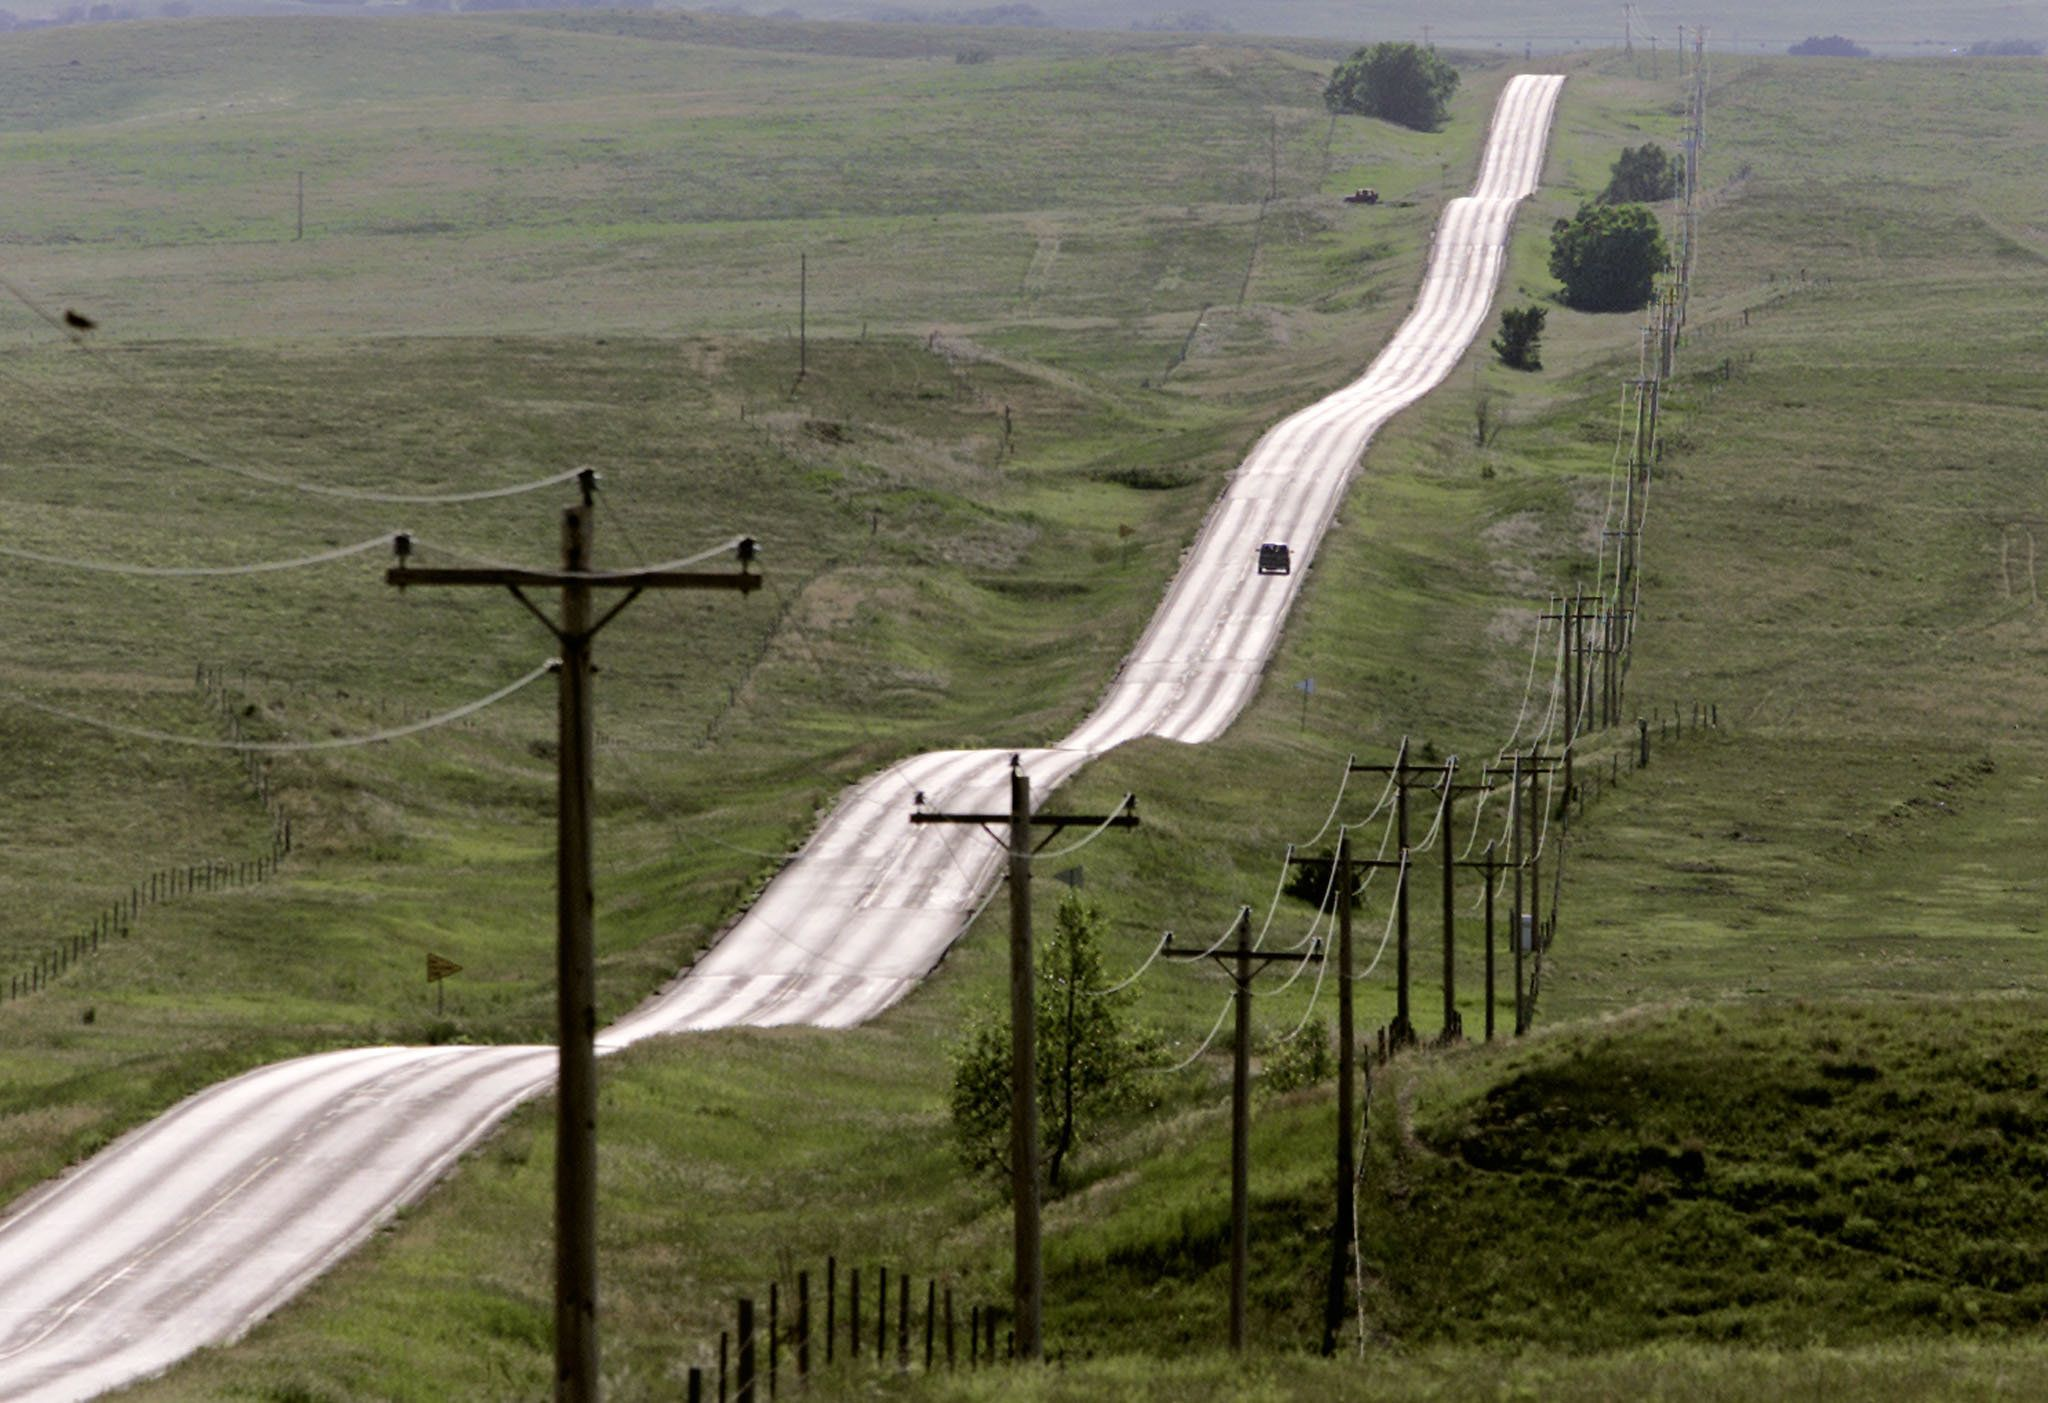 Residents of the Pine Ridge Indian Reservation in South Dakota must travel long distances along remote...